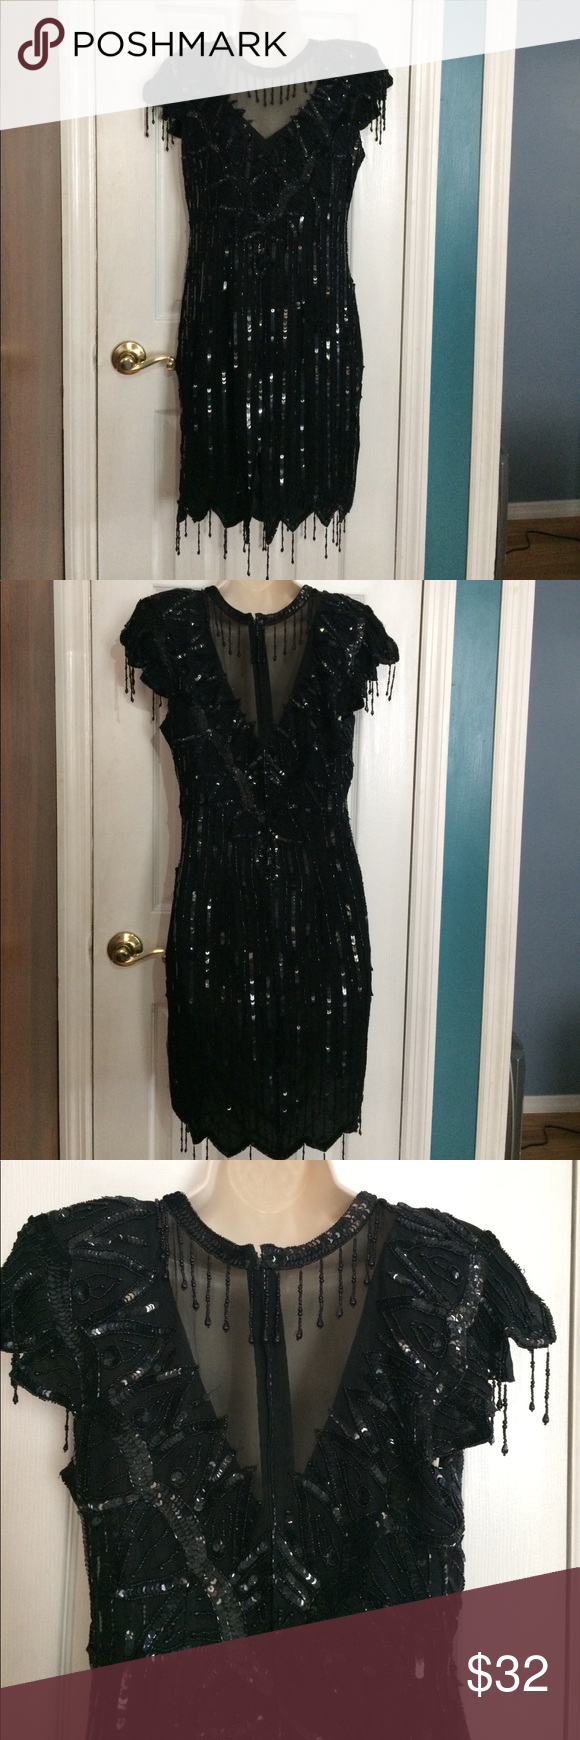 BLACK BEADED/SEQUIN FORMAL GATSBY ELEGANT DRESS Bust: 36 in.  Length: 35in.  Waist: 32 in. short sleeve. hanging beads. beautiful beaded neckline. Fitted. Worn Once, Gently. Dresses Midi